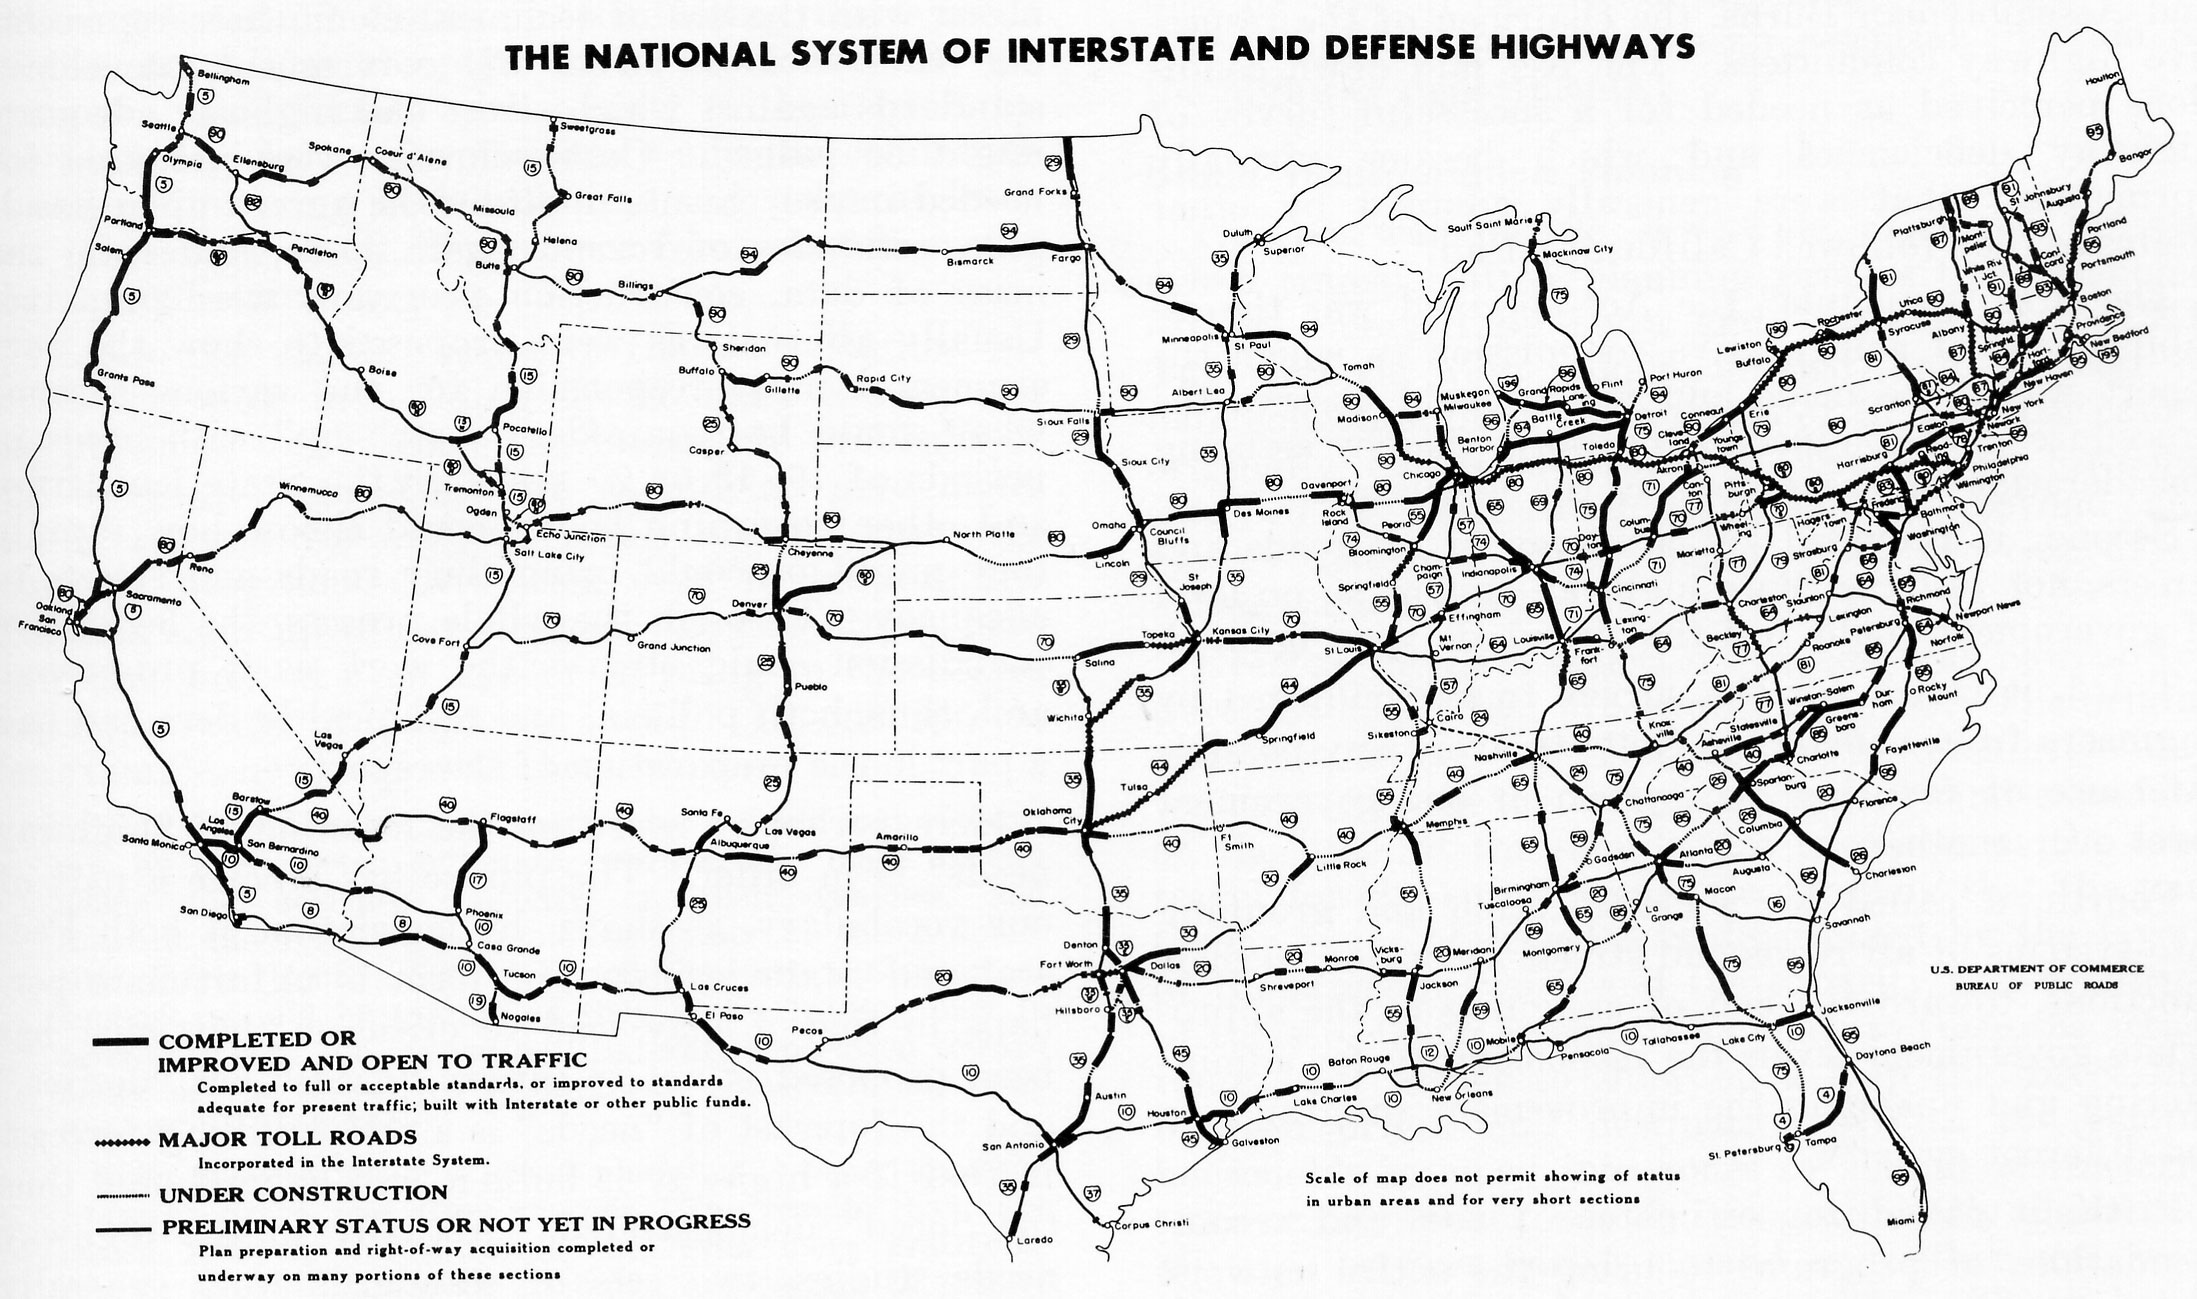 FileInterstate Highway Status Unknown Datejpg Wikimedia Commons - Us map of interstates